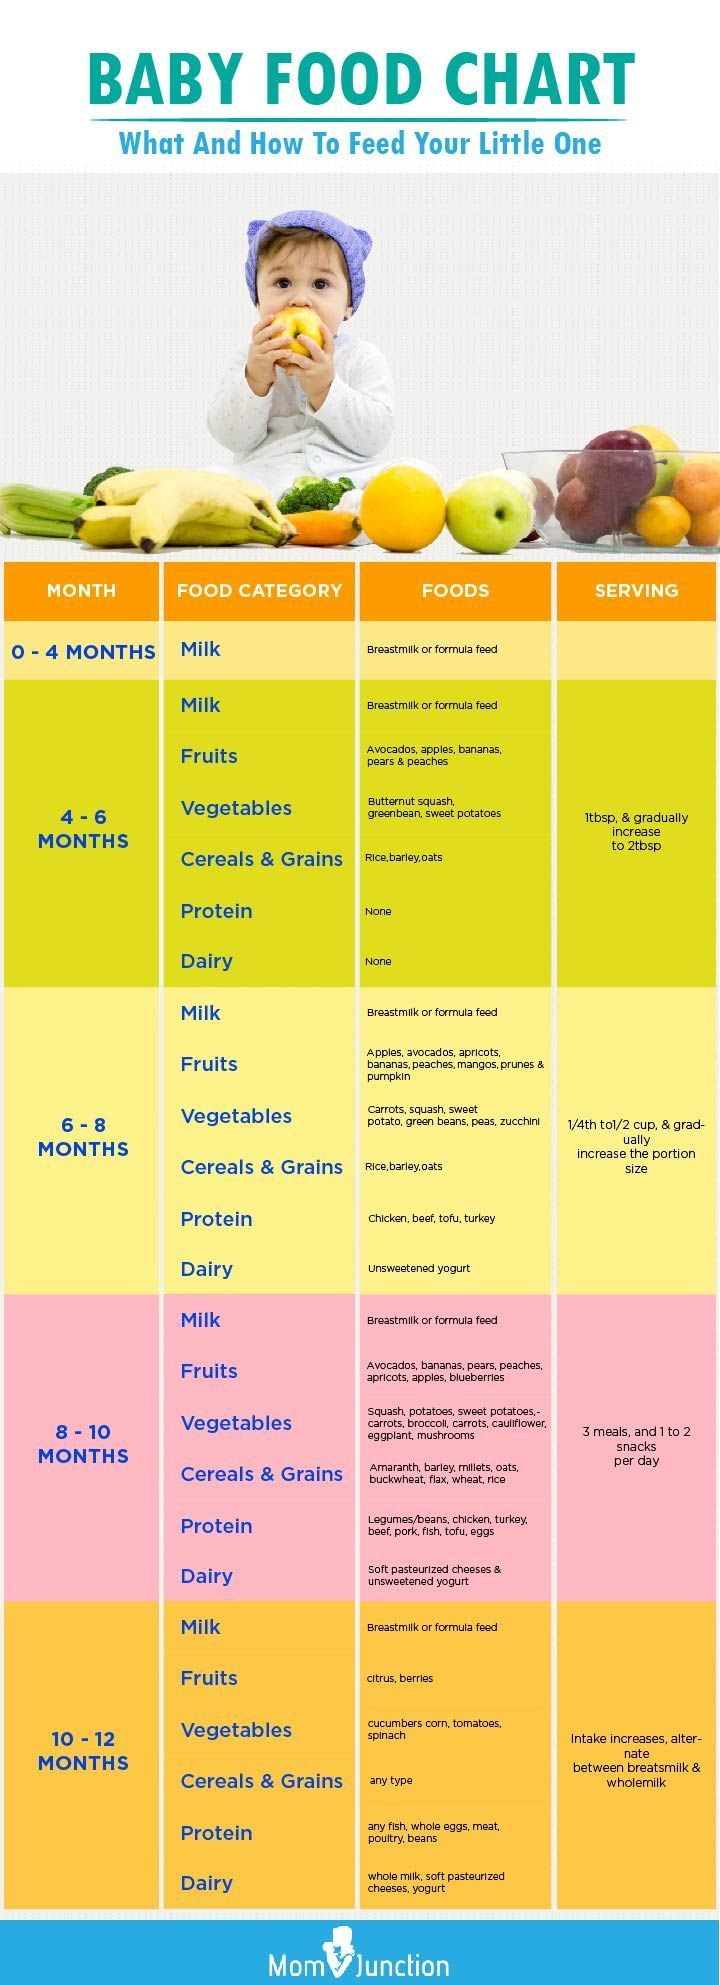 7 Essential Tips To Follow For Your Baby Food Chart Baby First Foods Baby Food Recipes Homemade Baby Foods